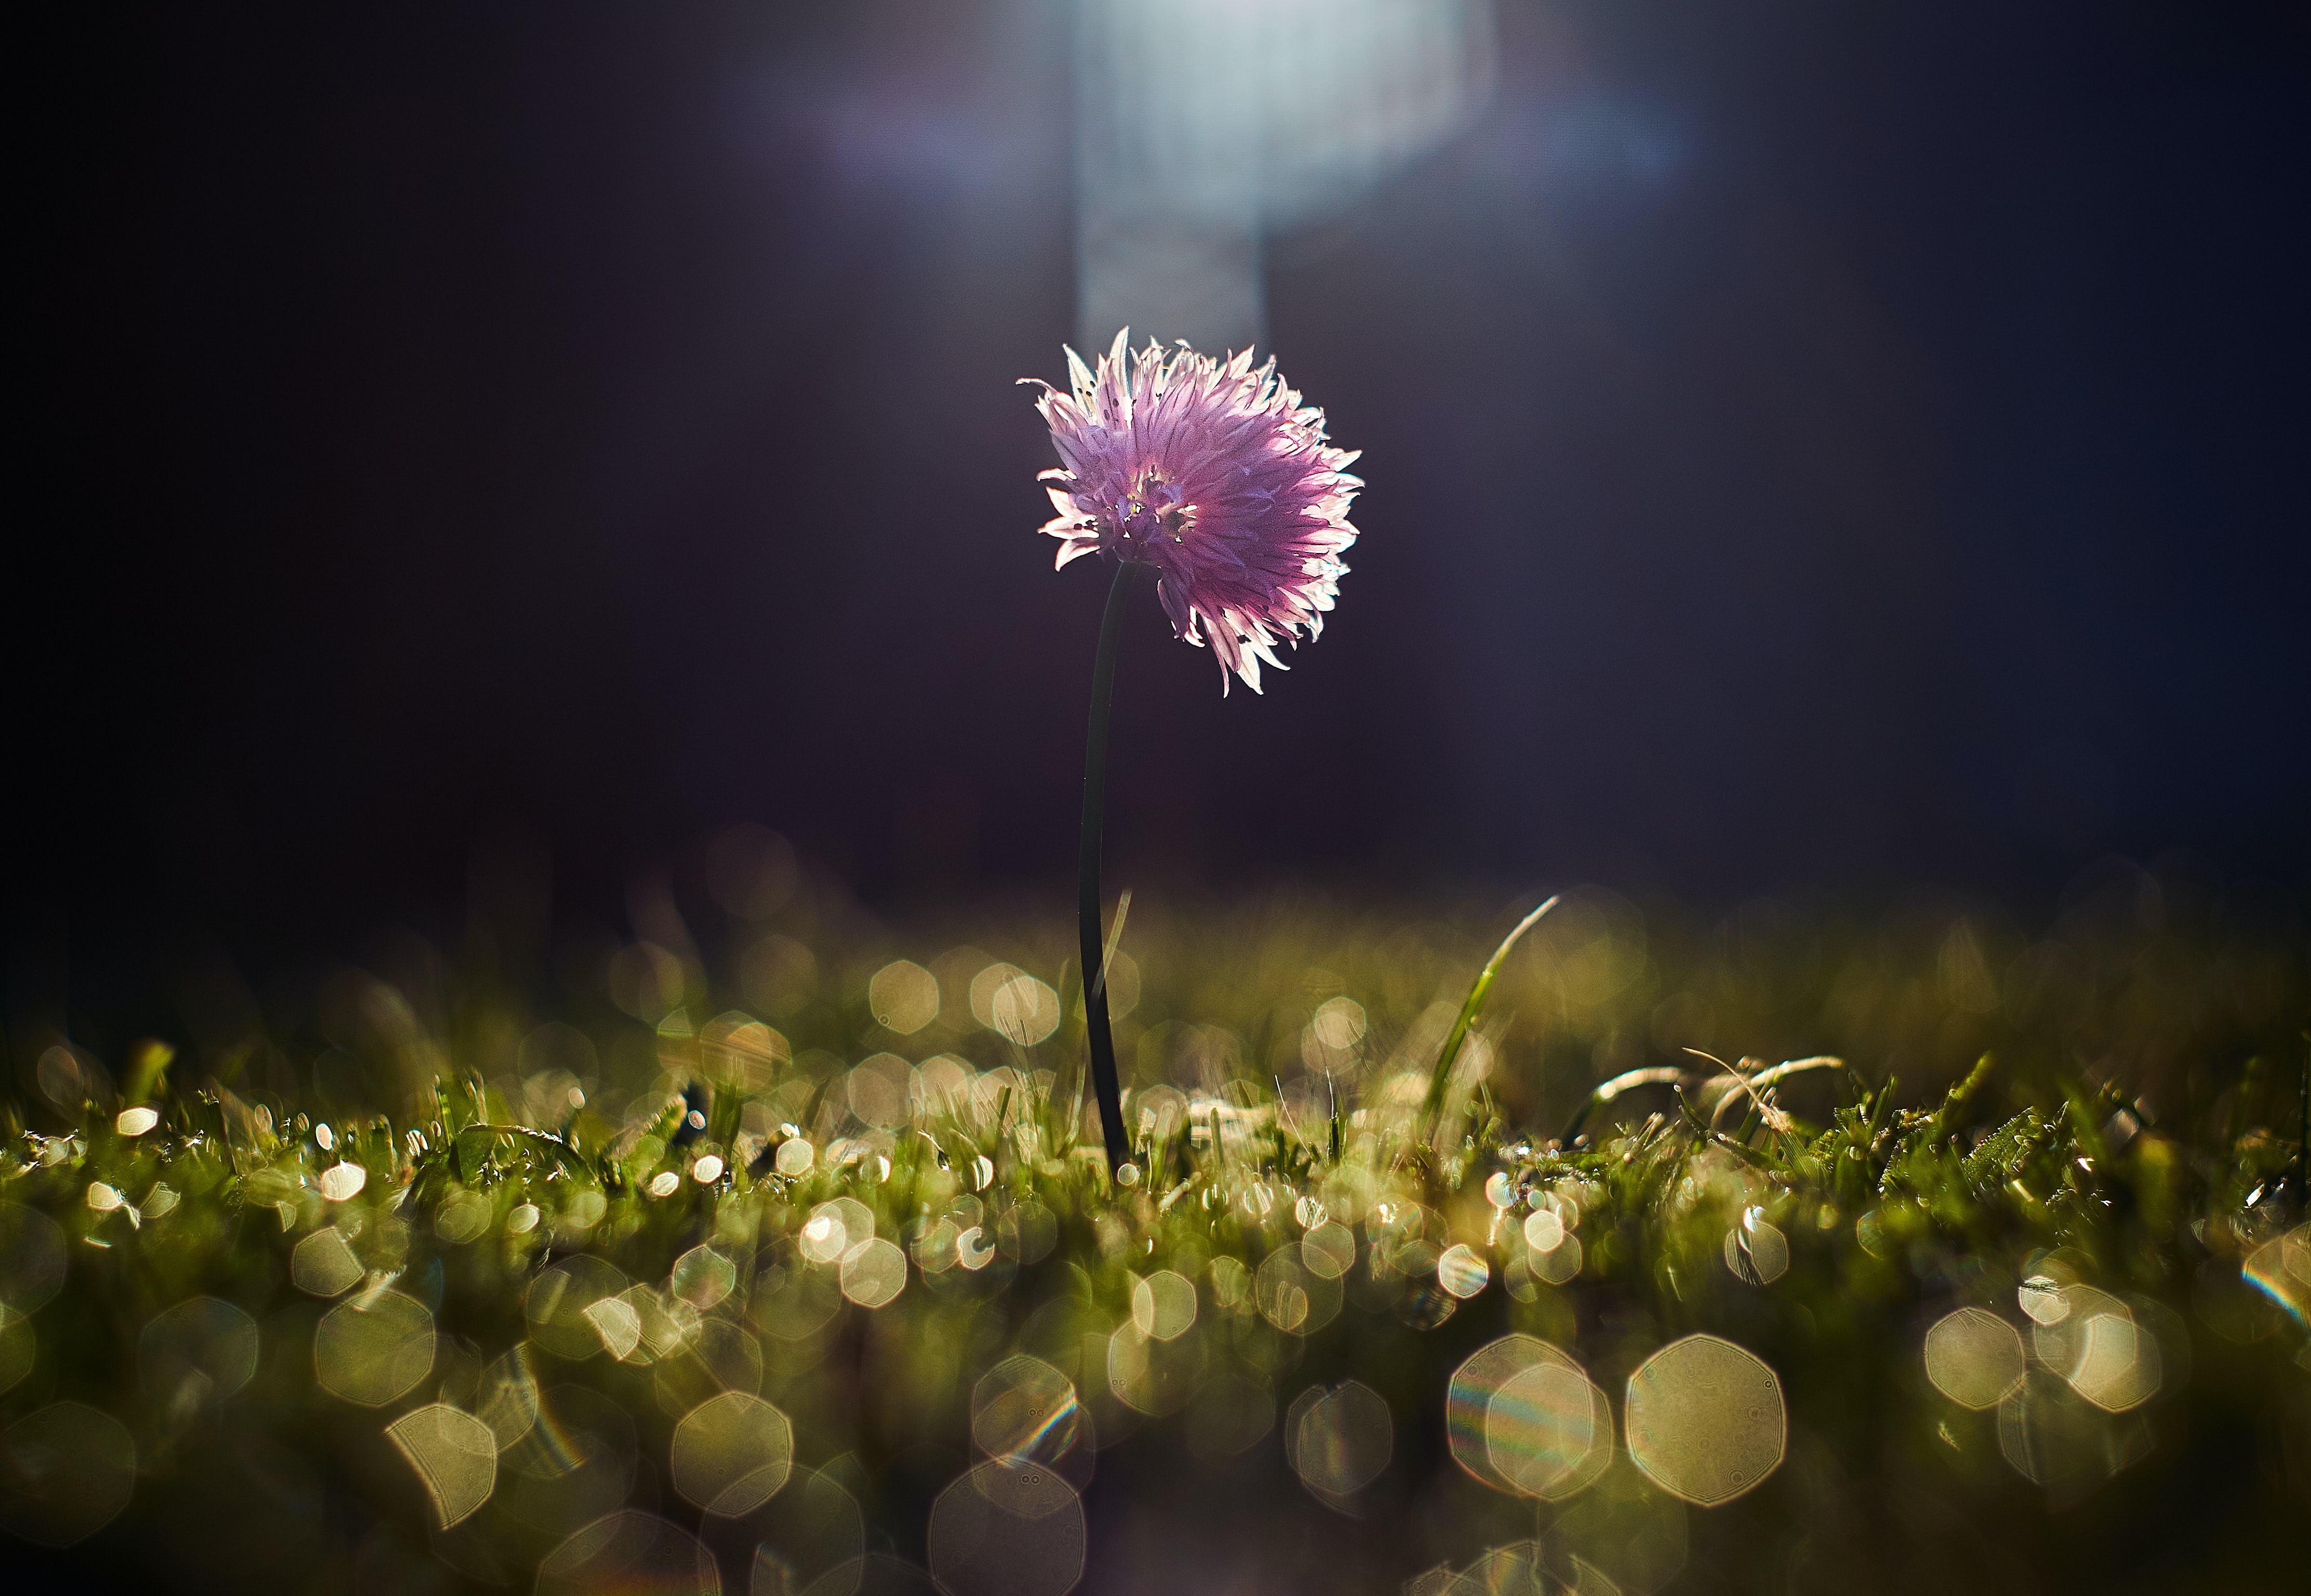 Sun shining on a lone pink flower on a green stem in a patch of grass